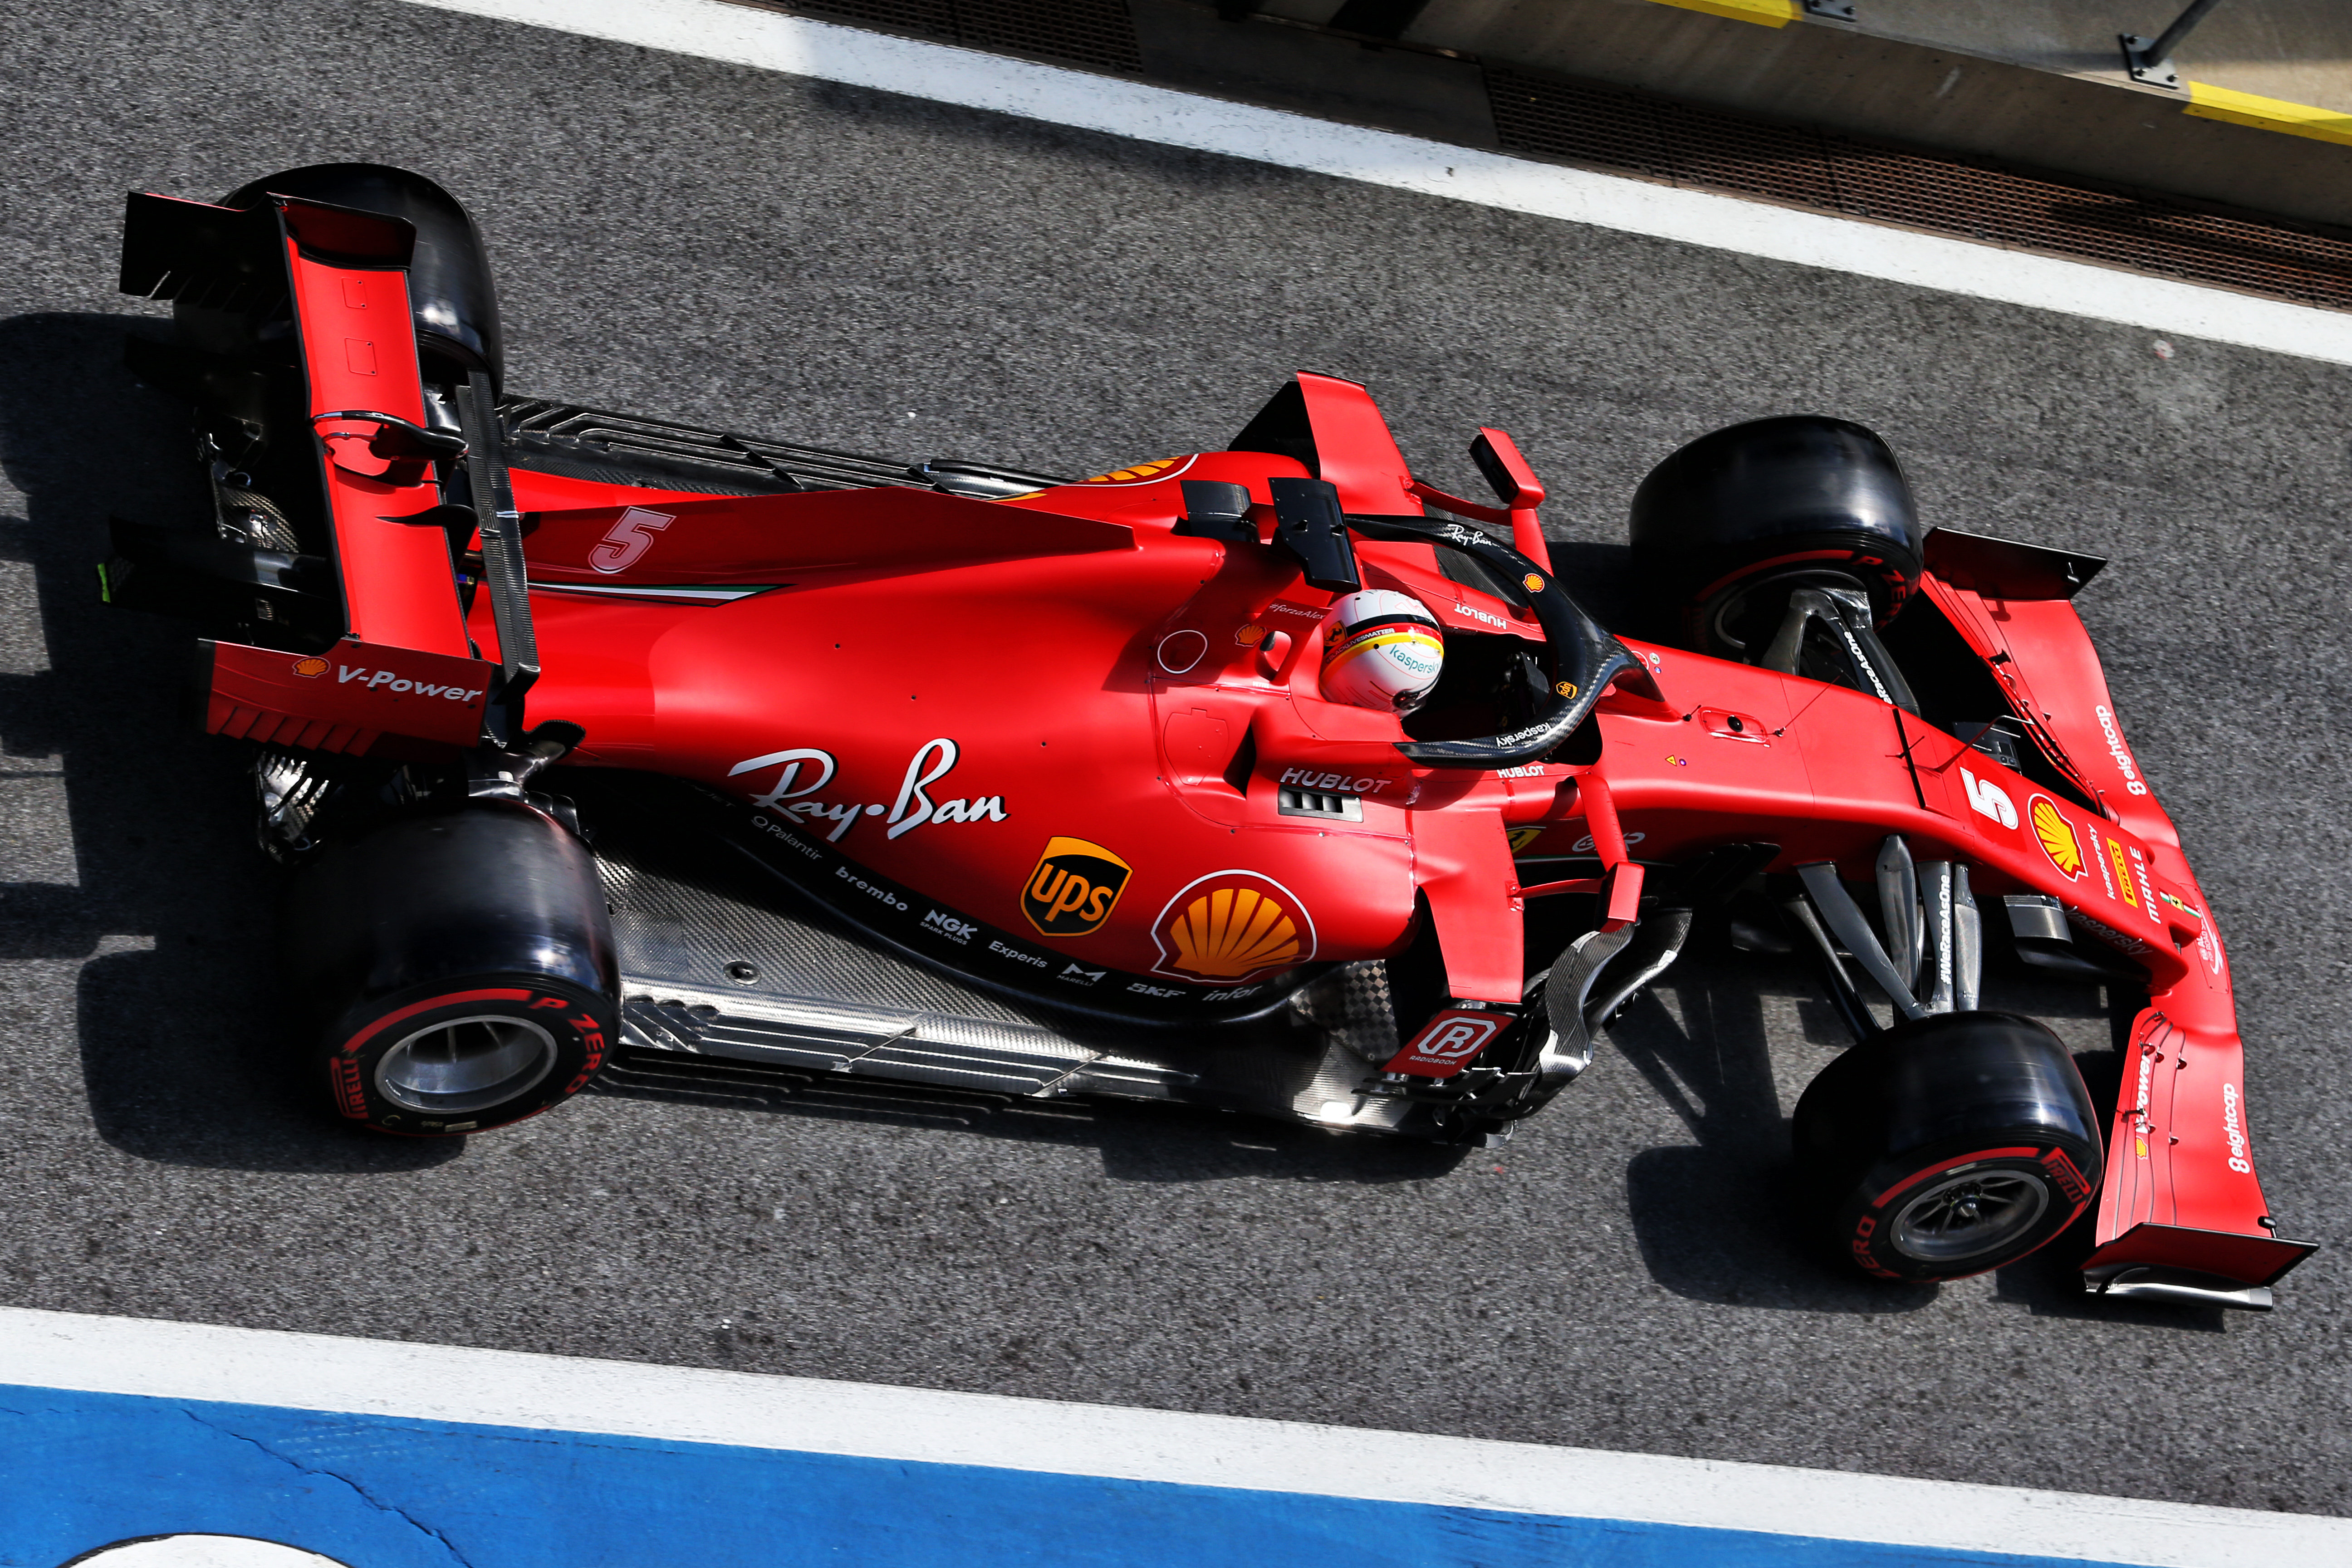 Ferrari Racing To Change 2021 Engine Around Fia Directives The Race